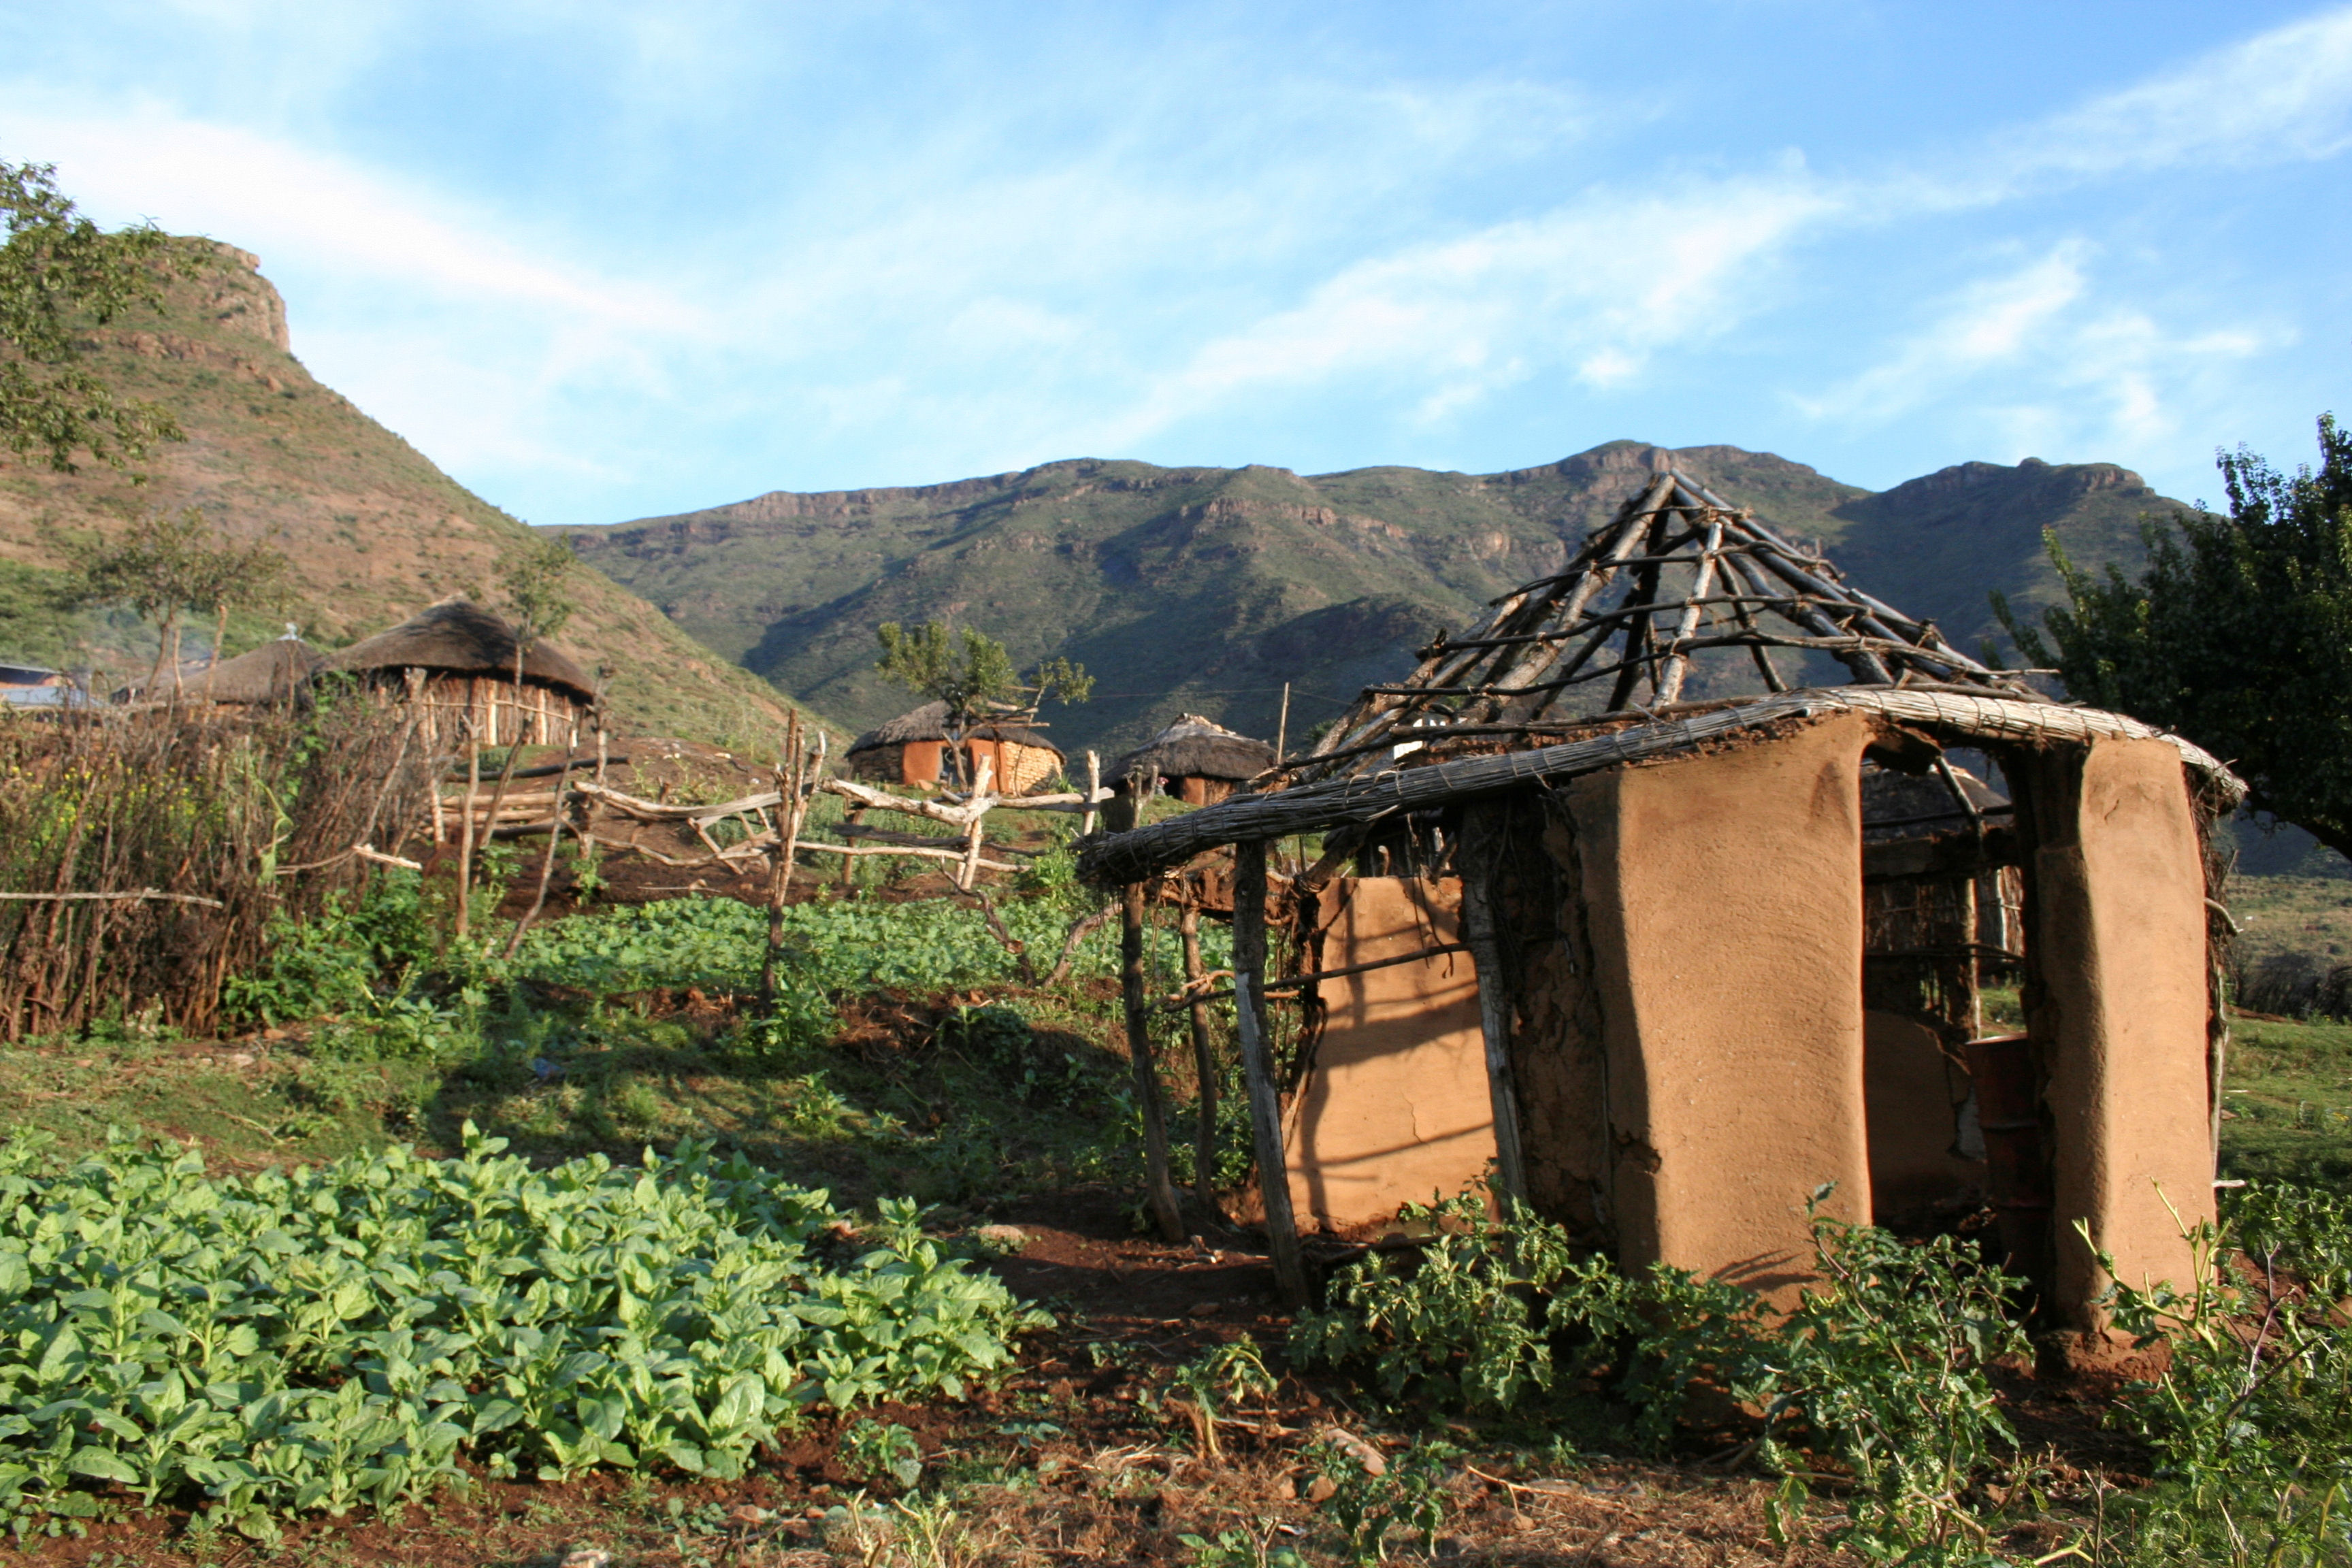 House in Lesotho